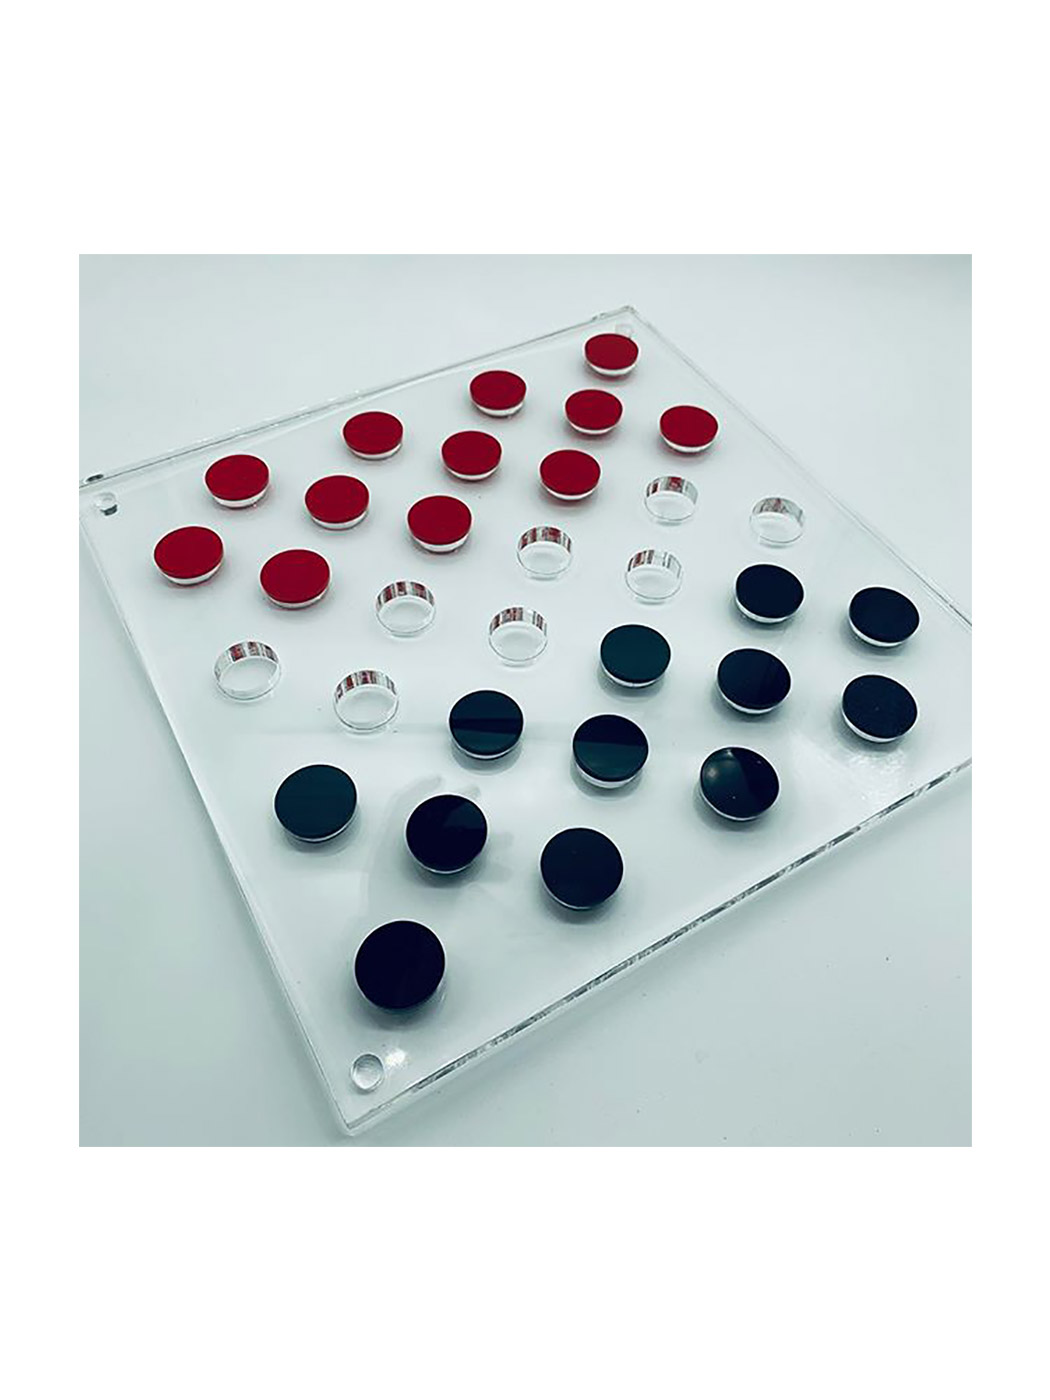 Modern Acrylic Checkers Set in Red and Black